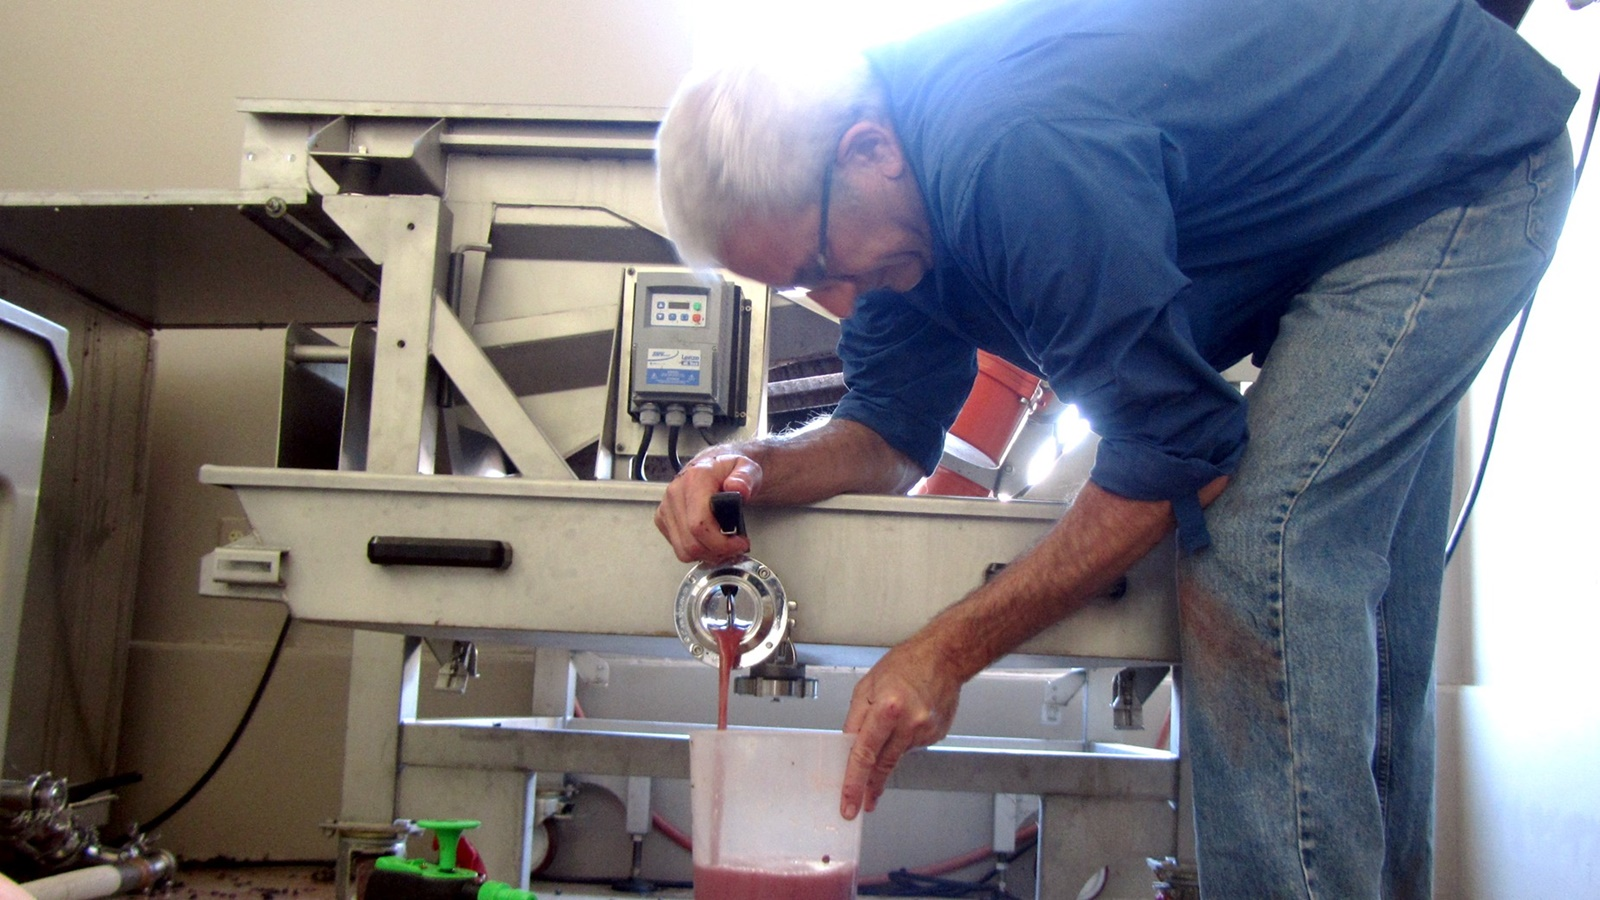 1 Steve Rossi saigneeing from vibration table